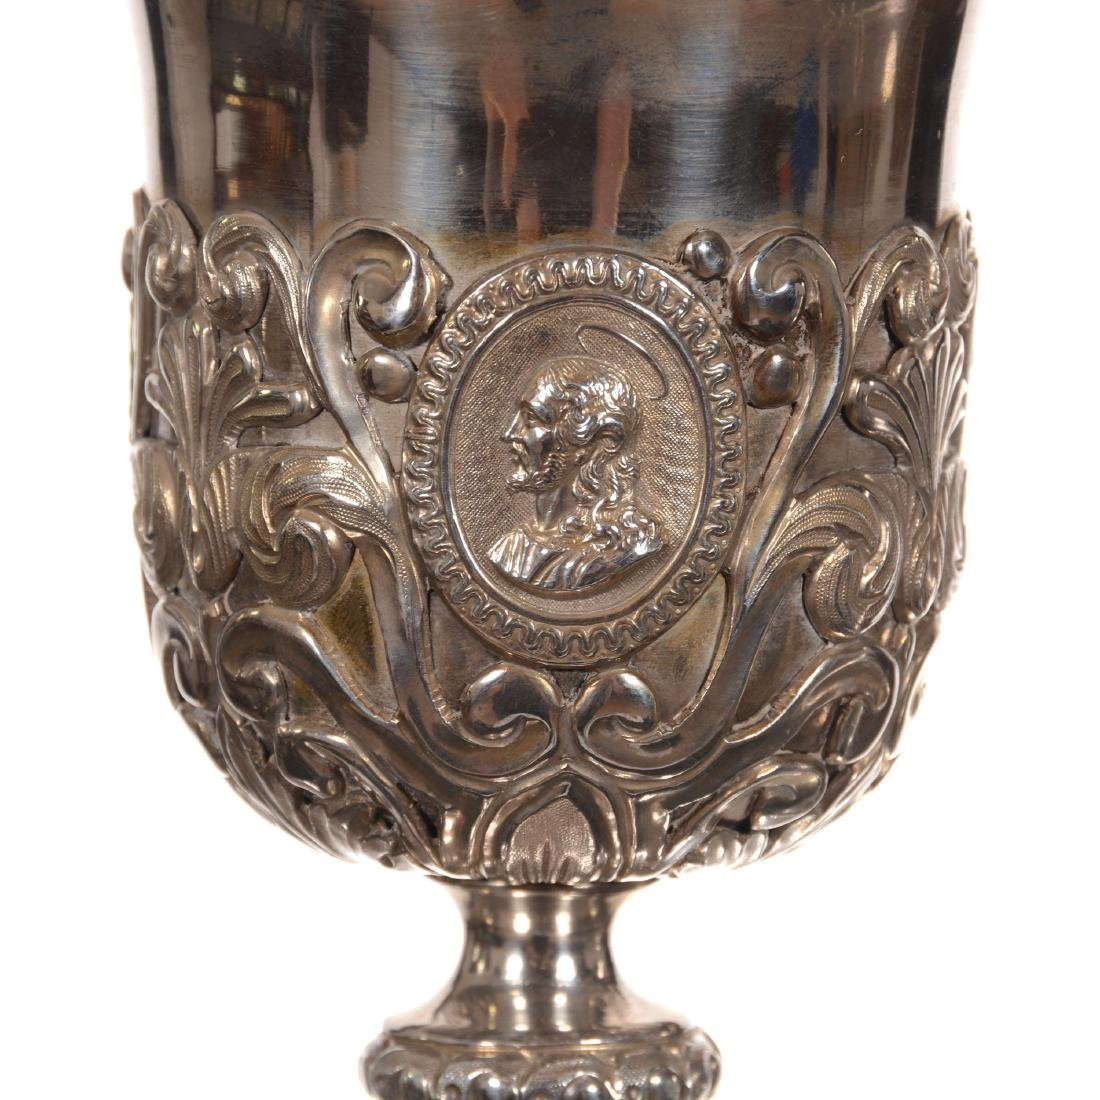 Antique Silver Communion Chalice - 4